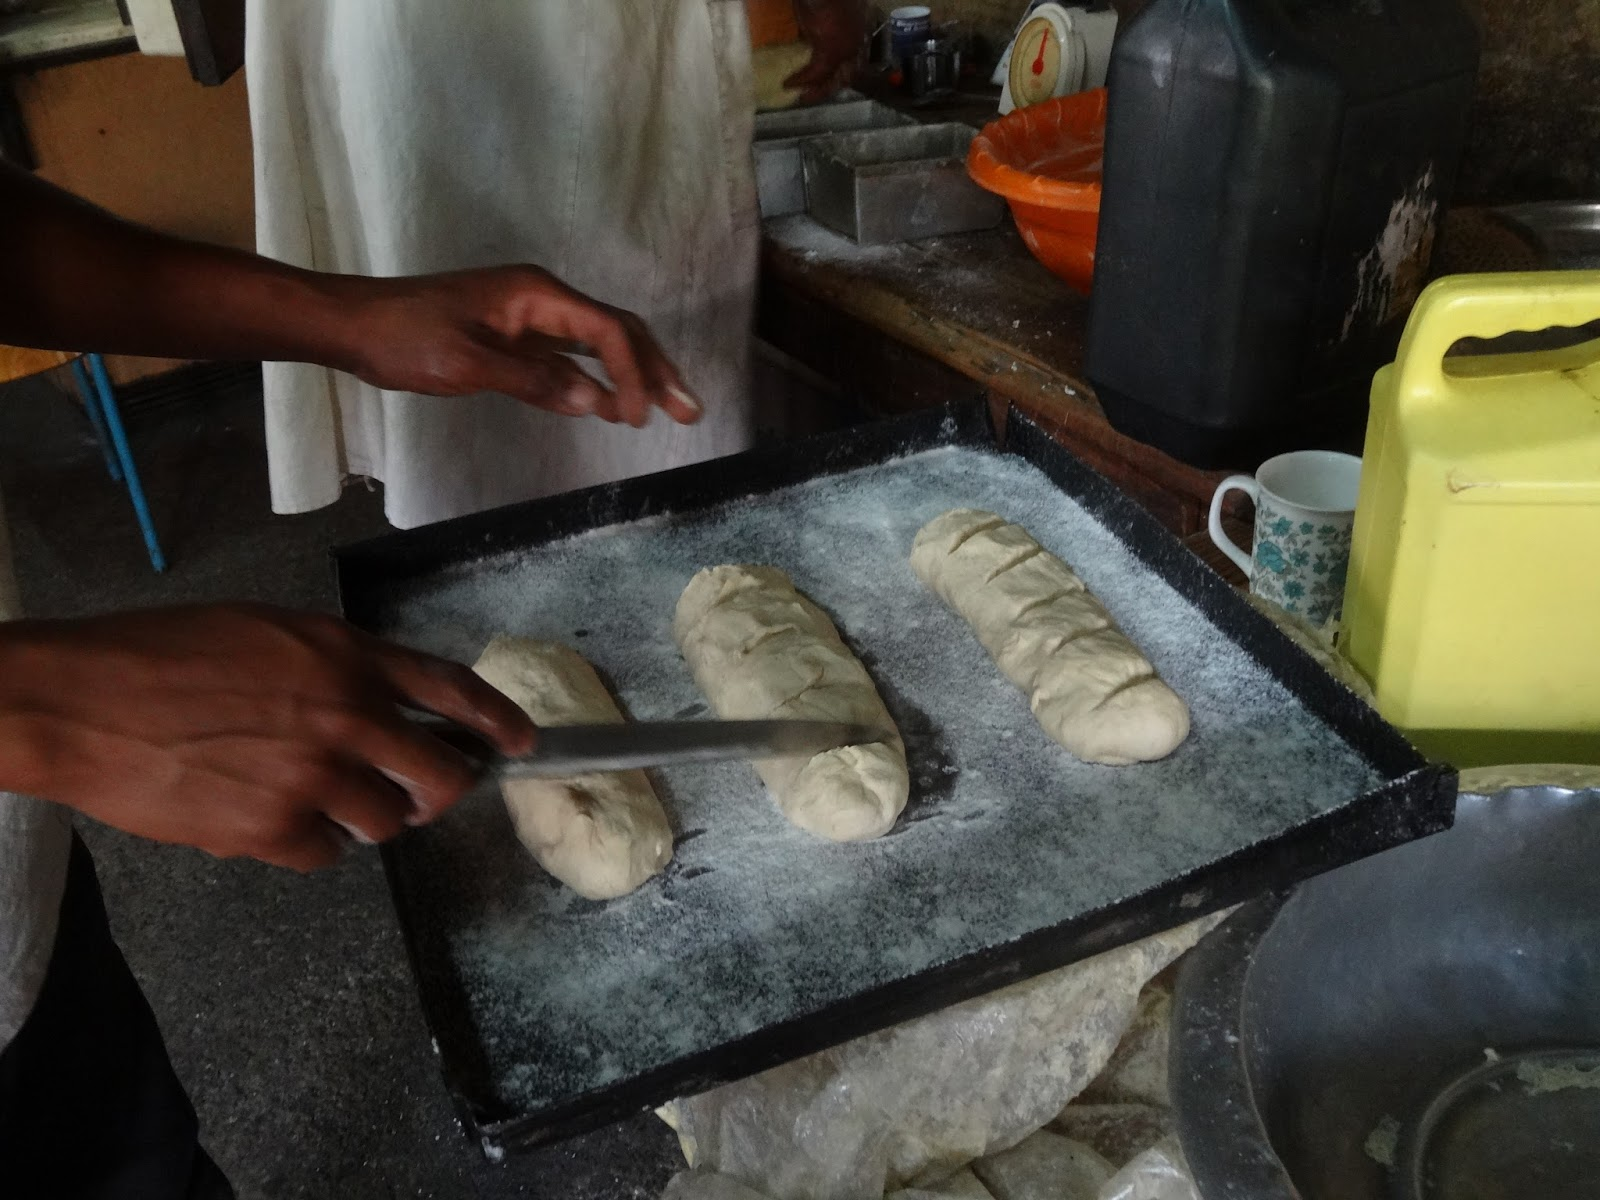 Kitchen Scale Kenya Word And Seed In Uganda Baking Bread